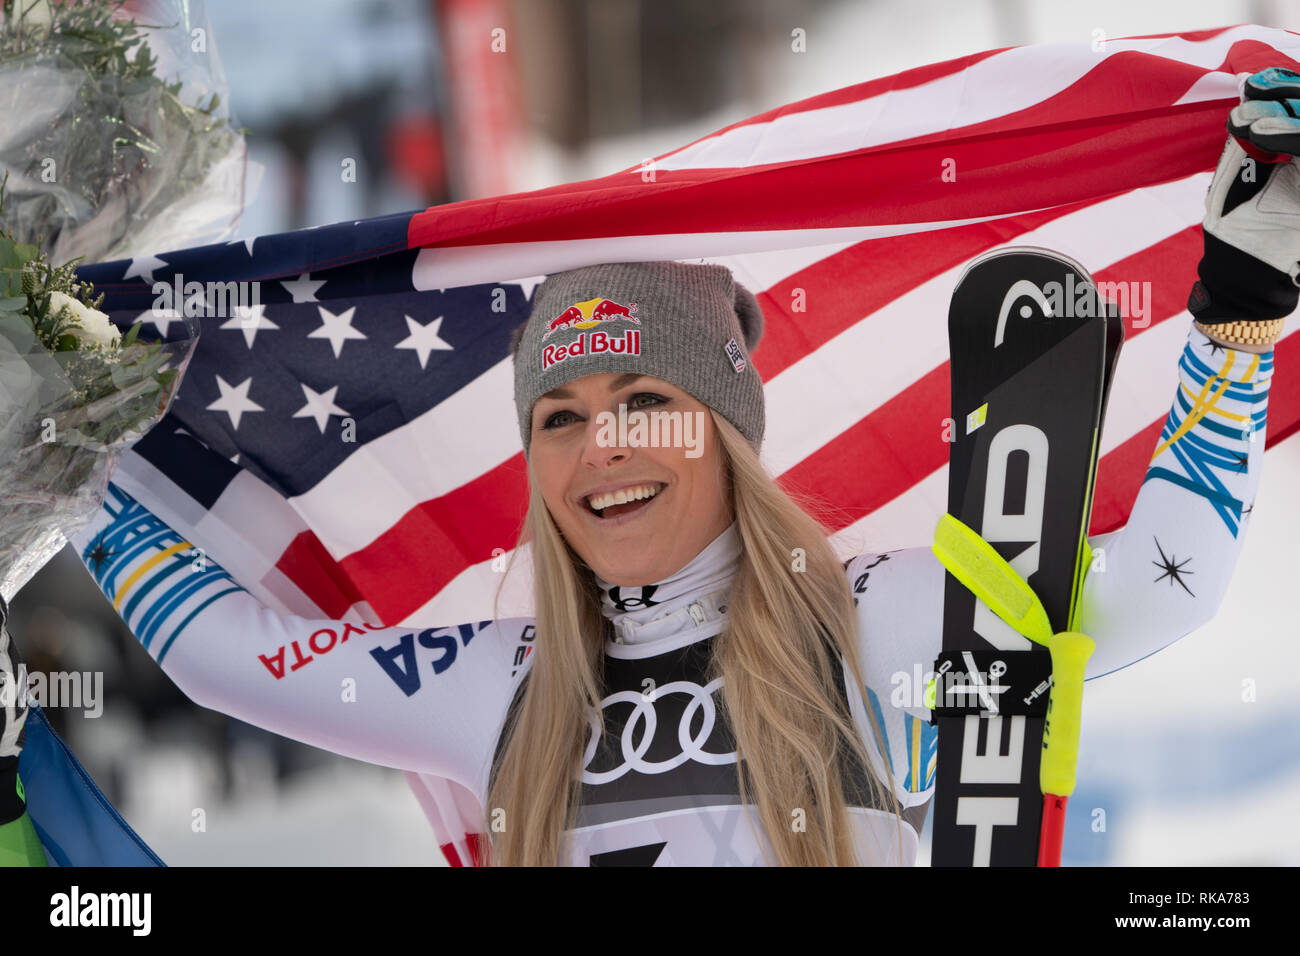 Are, Sweden. 26th Jan, 2017. Alpine skiing, world championship, downhill, ladies: Lindsey Vonn from the USA on the podium. Credit: Michael Kappeler/dpa/Alamy Live News - Stock Image